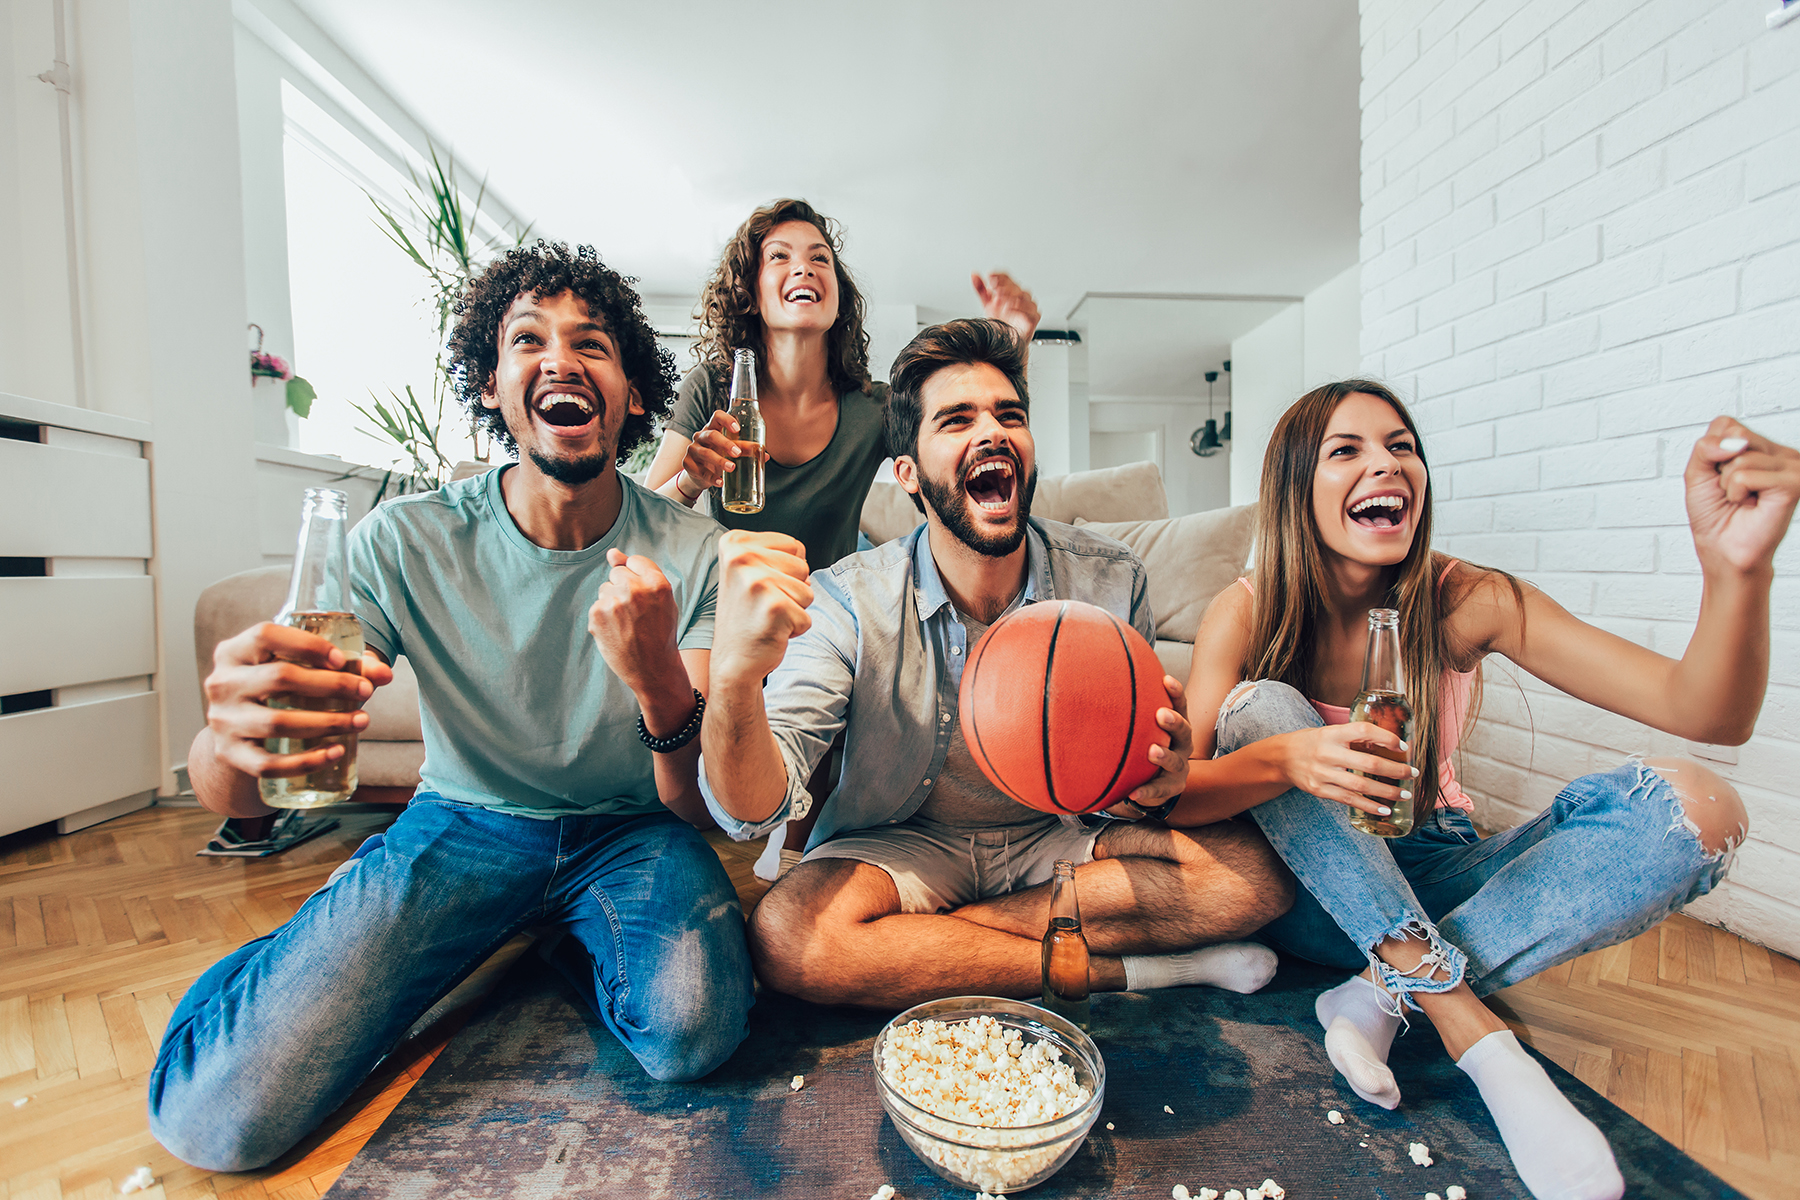 group of friends watching the basketball game with extreme excitement while eating and drinking